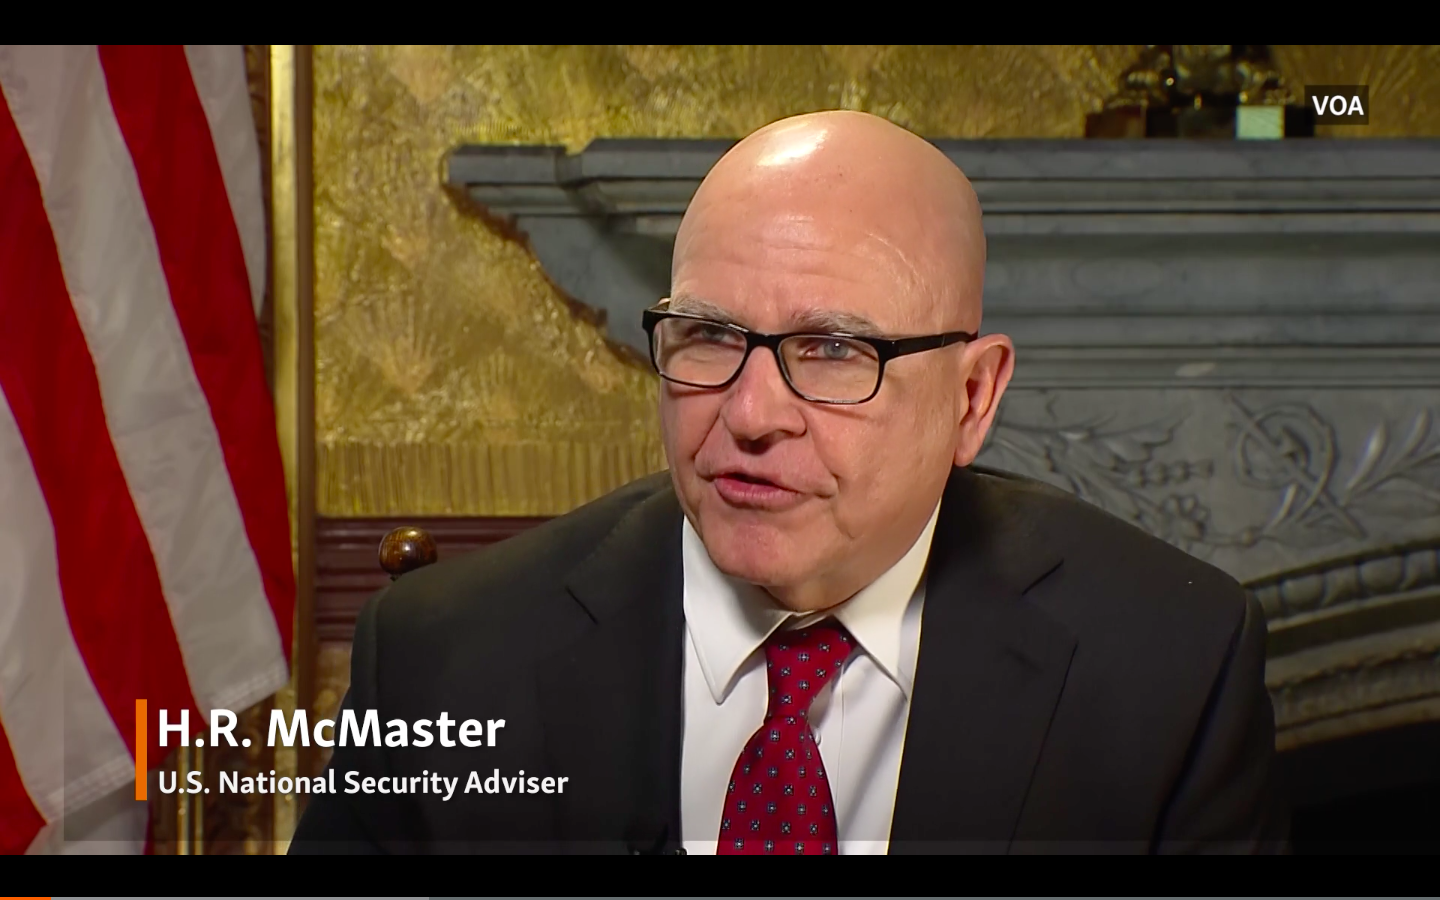 McMaster Says Russia Uses Implausible Deniability On Election Meddling